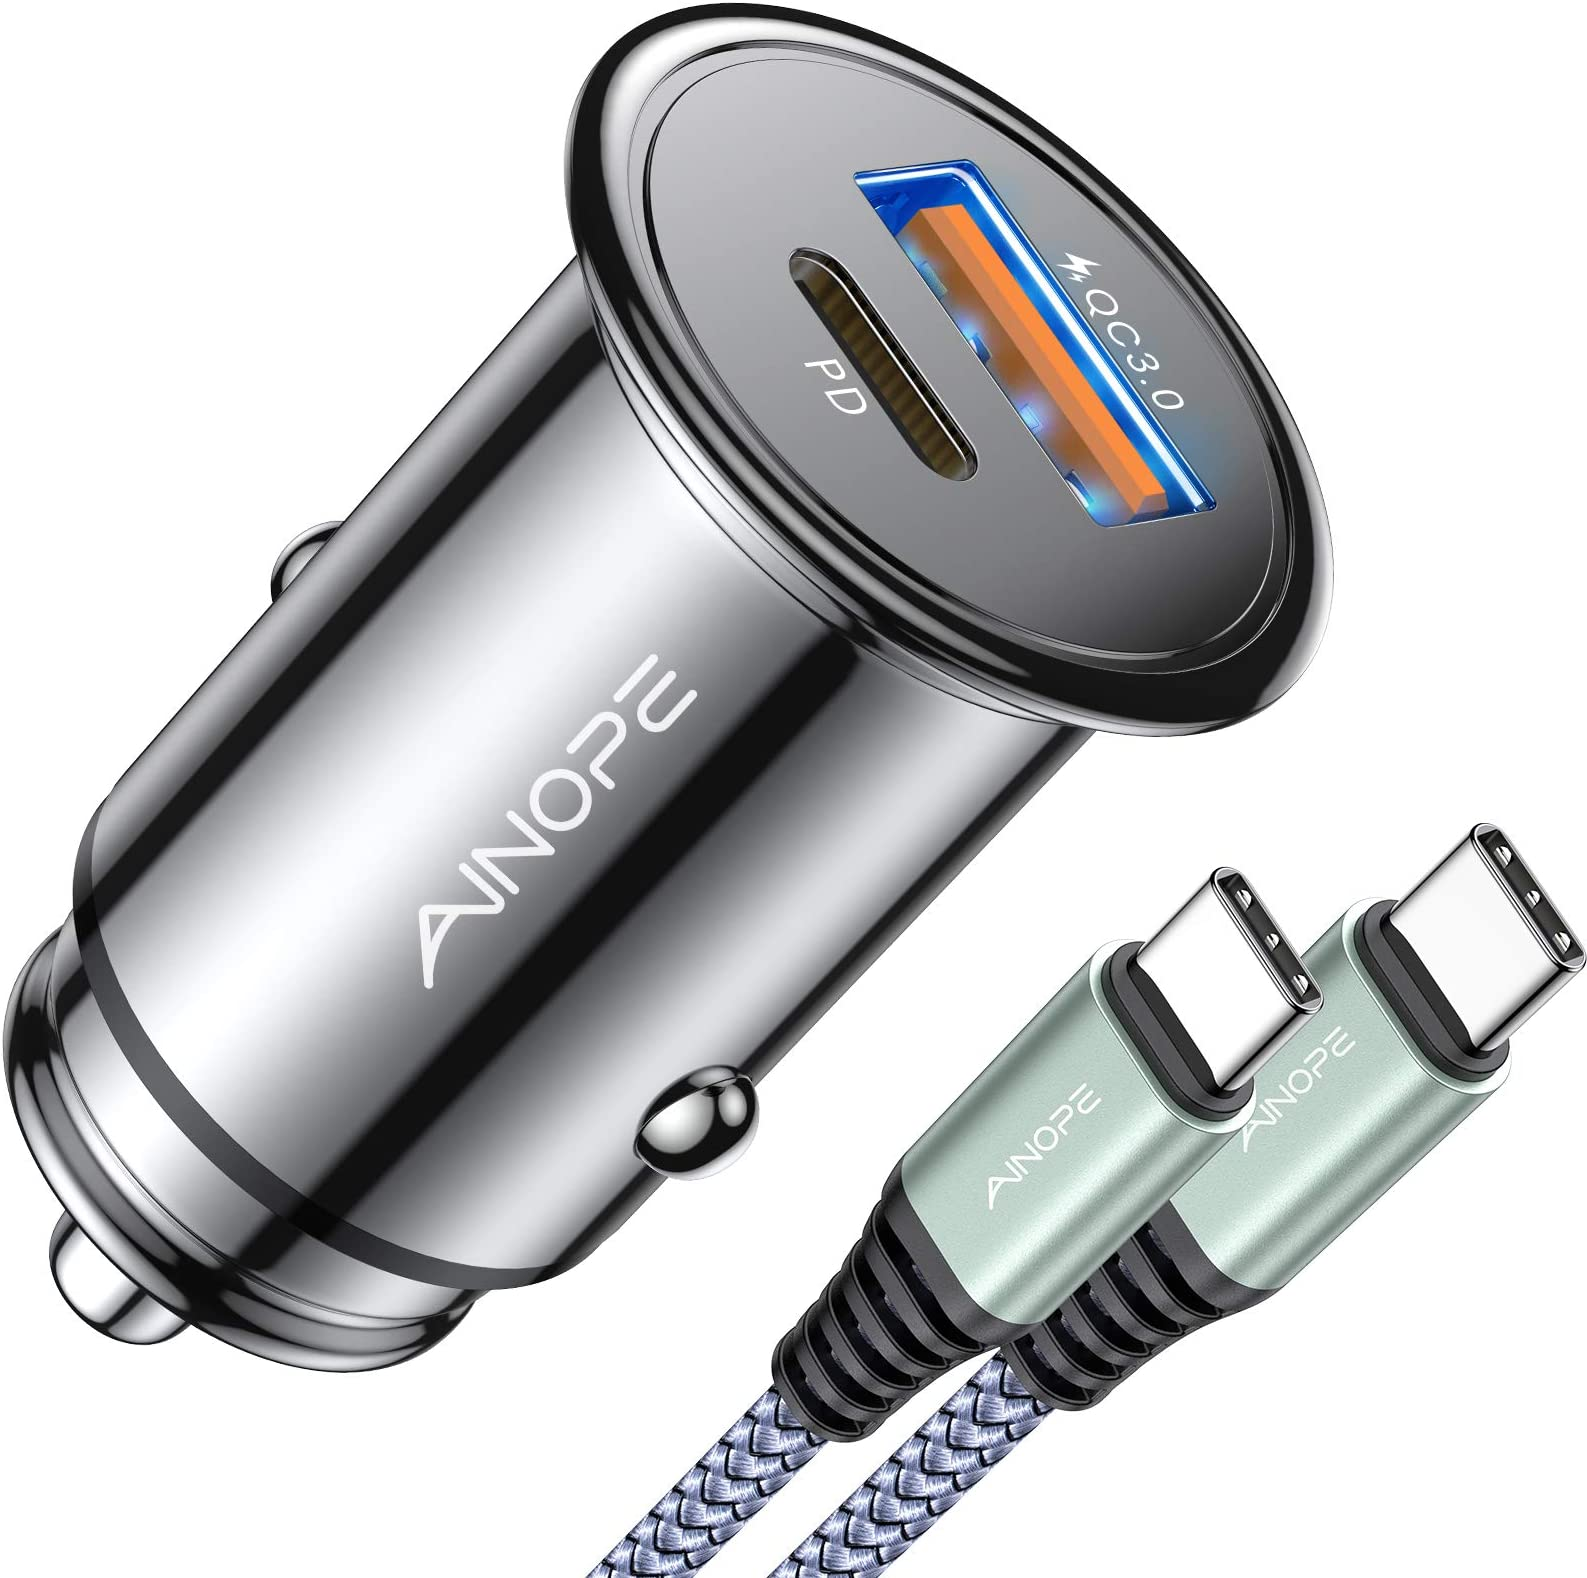 USB C Car Charger Super Mini AINOPE All Metal 36W Fast USB Car Charger PD&QC 3.0 Dual Port Car Adapter Compatible with iPhone 12/12 Pro/Max/12 Mini/iPhone 11/Pro/Max/XR/XS/Max/8, Galaxy S21/20/10/9